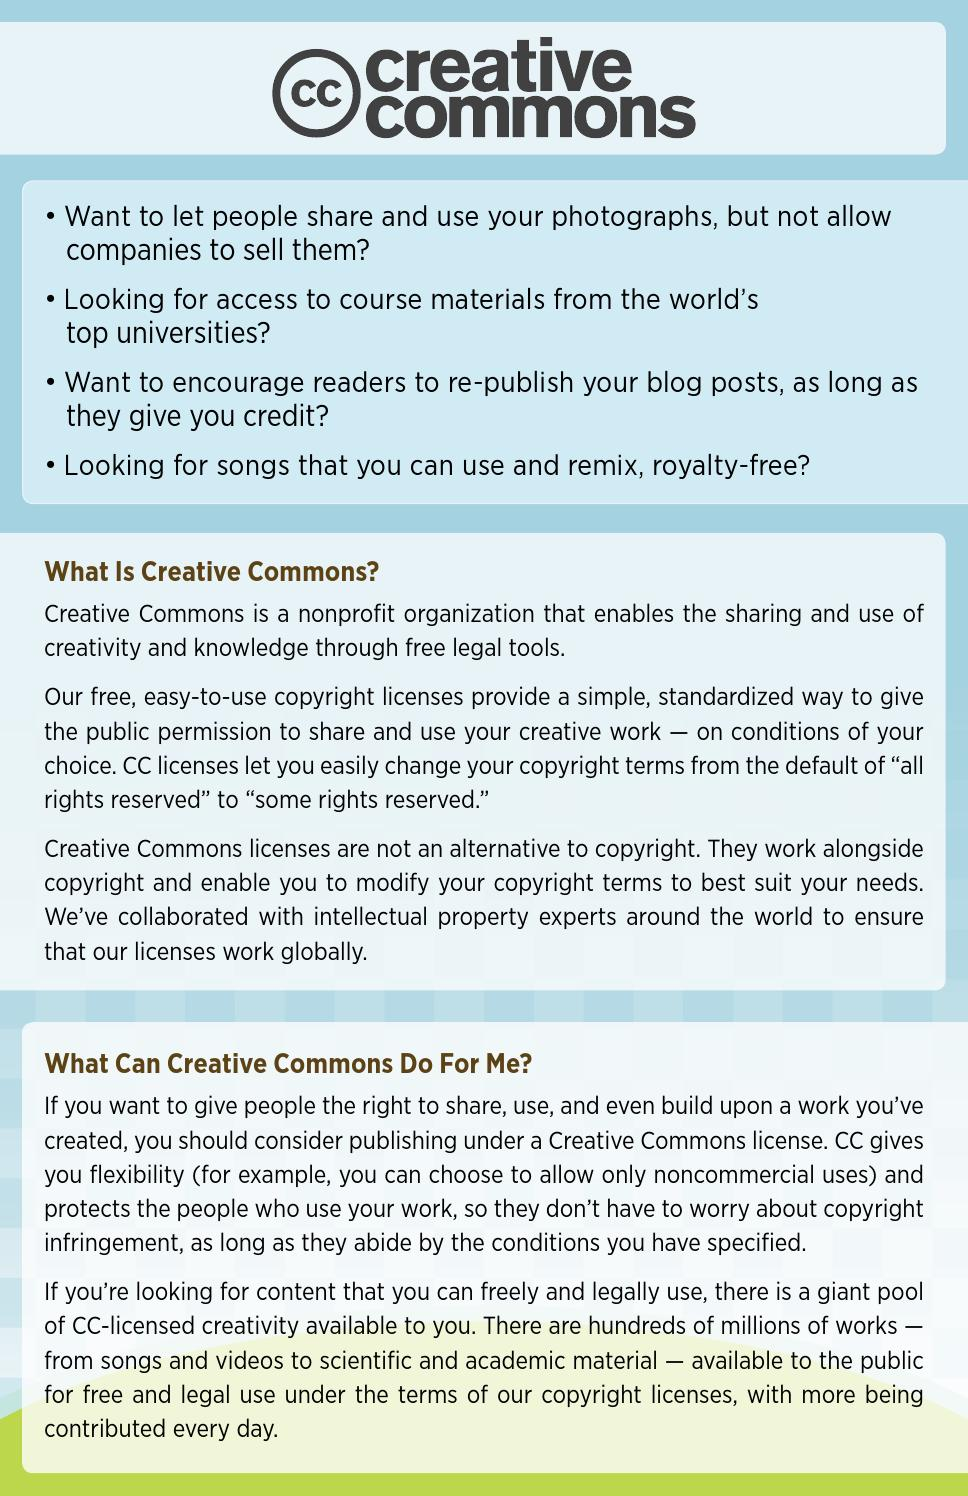 What Is Creative Commons? By Intelrev